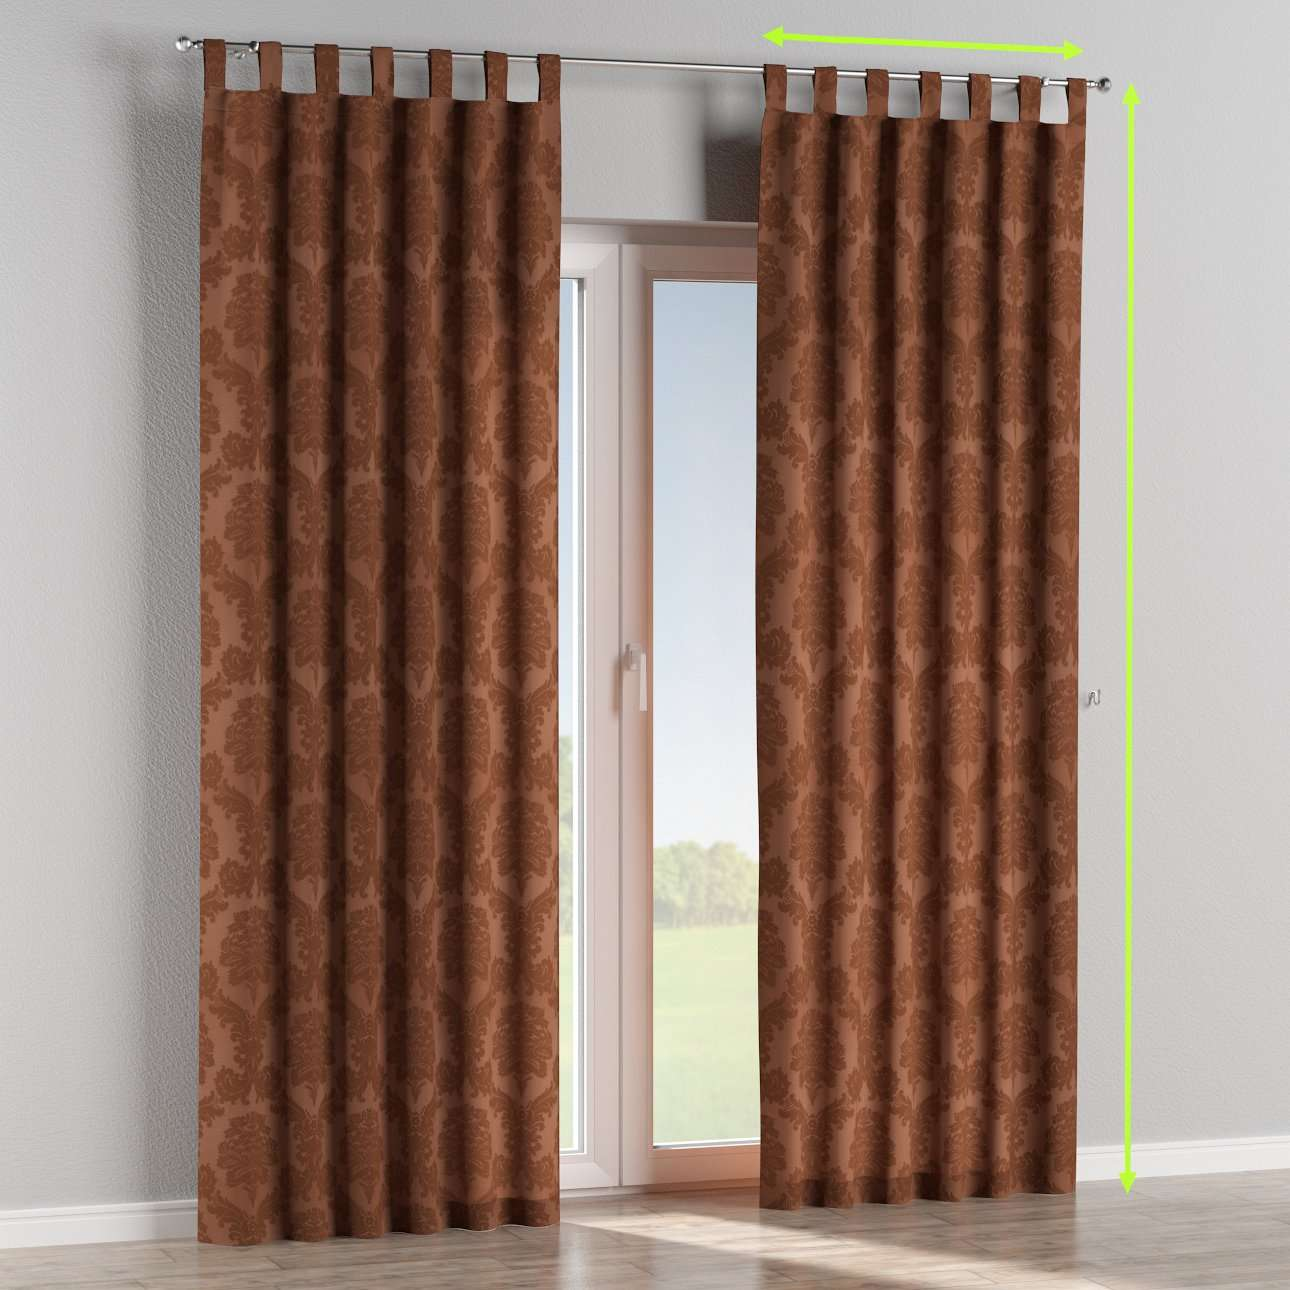 Tab top lined curtains in collection Damasco, fabric: 613-88